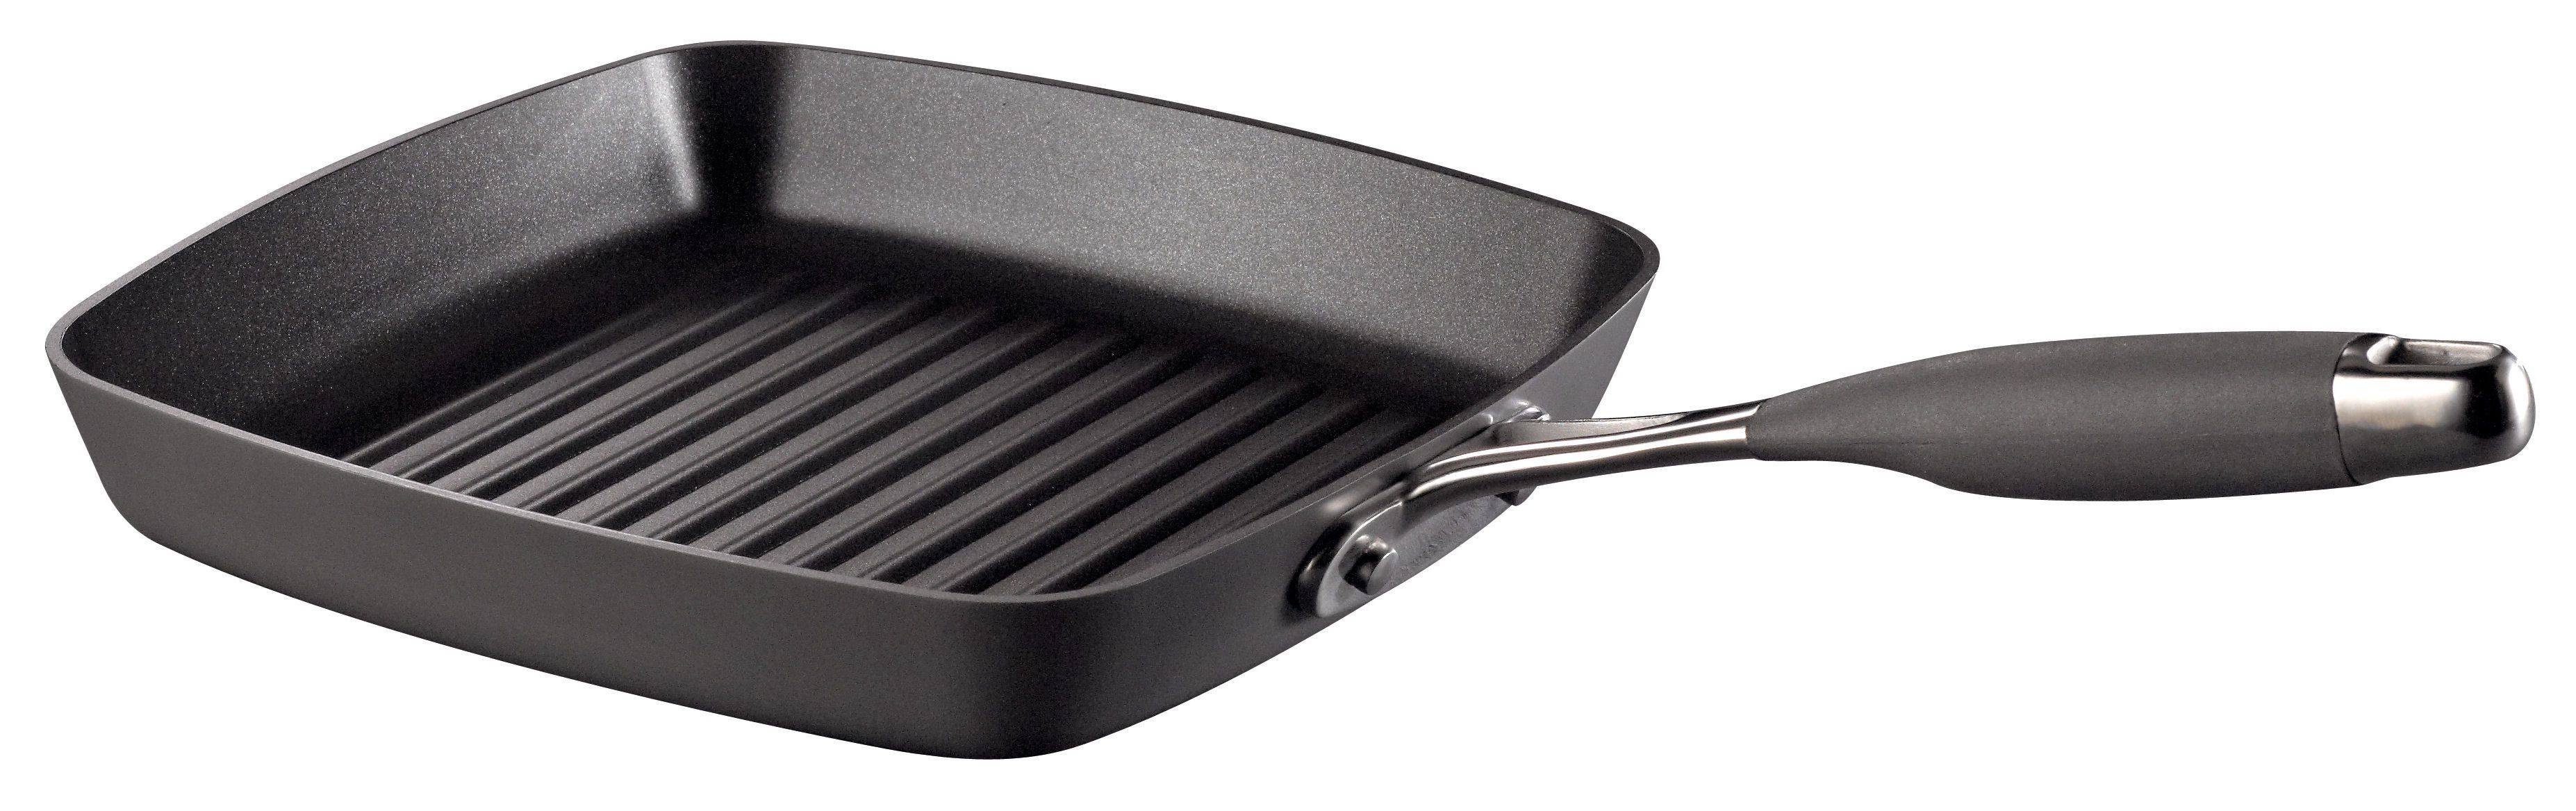 Image of Raymond Blanc 24cm Square grill pan